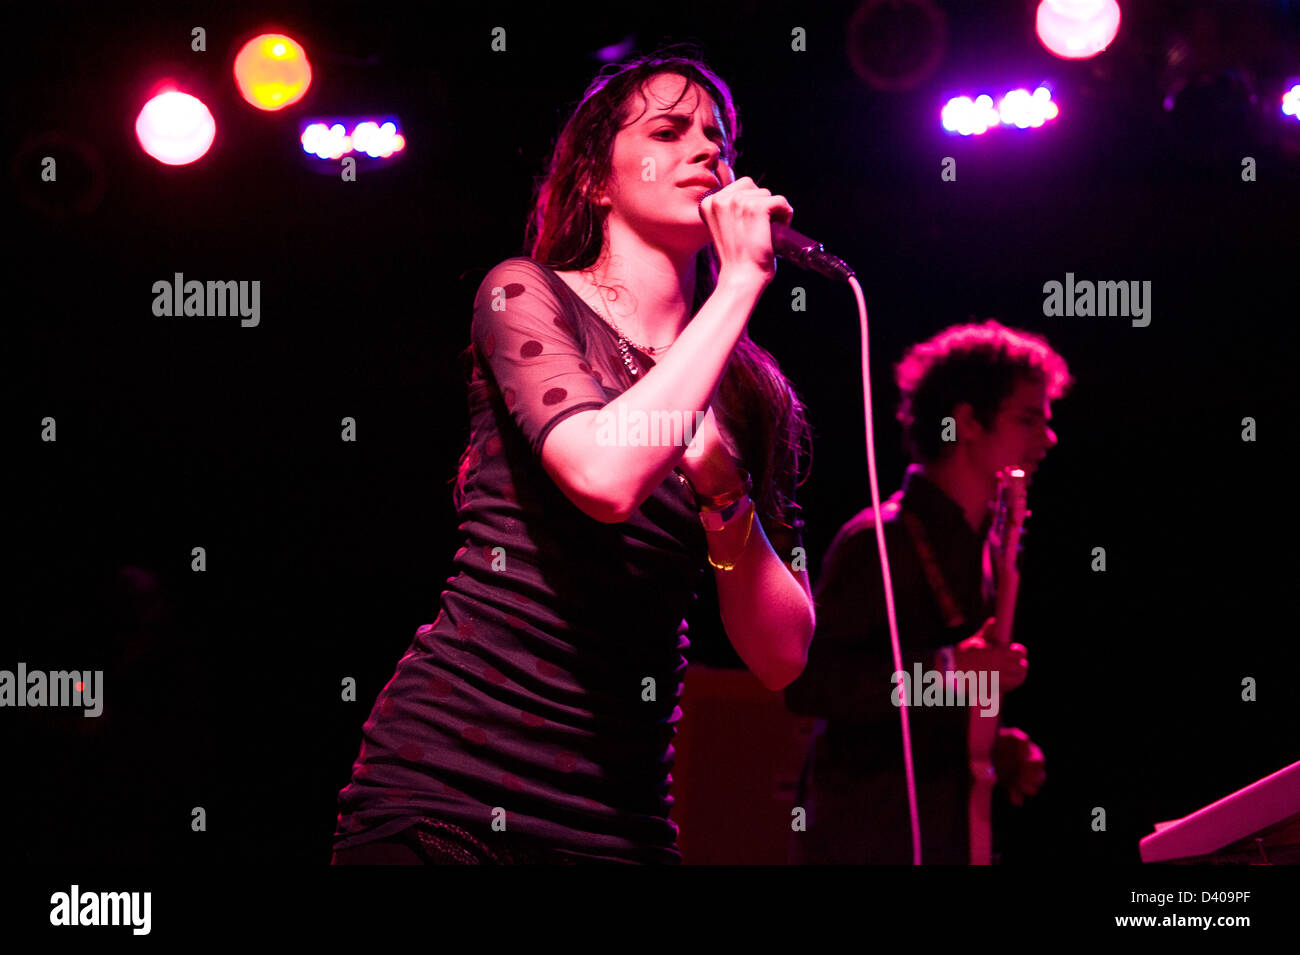 Teri Gender Bender performing with Bosnian Rainbows at Bottom Lounge in Chicago. - Stock Image